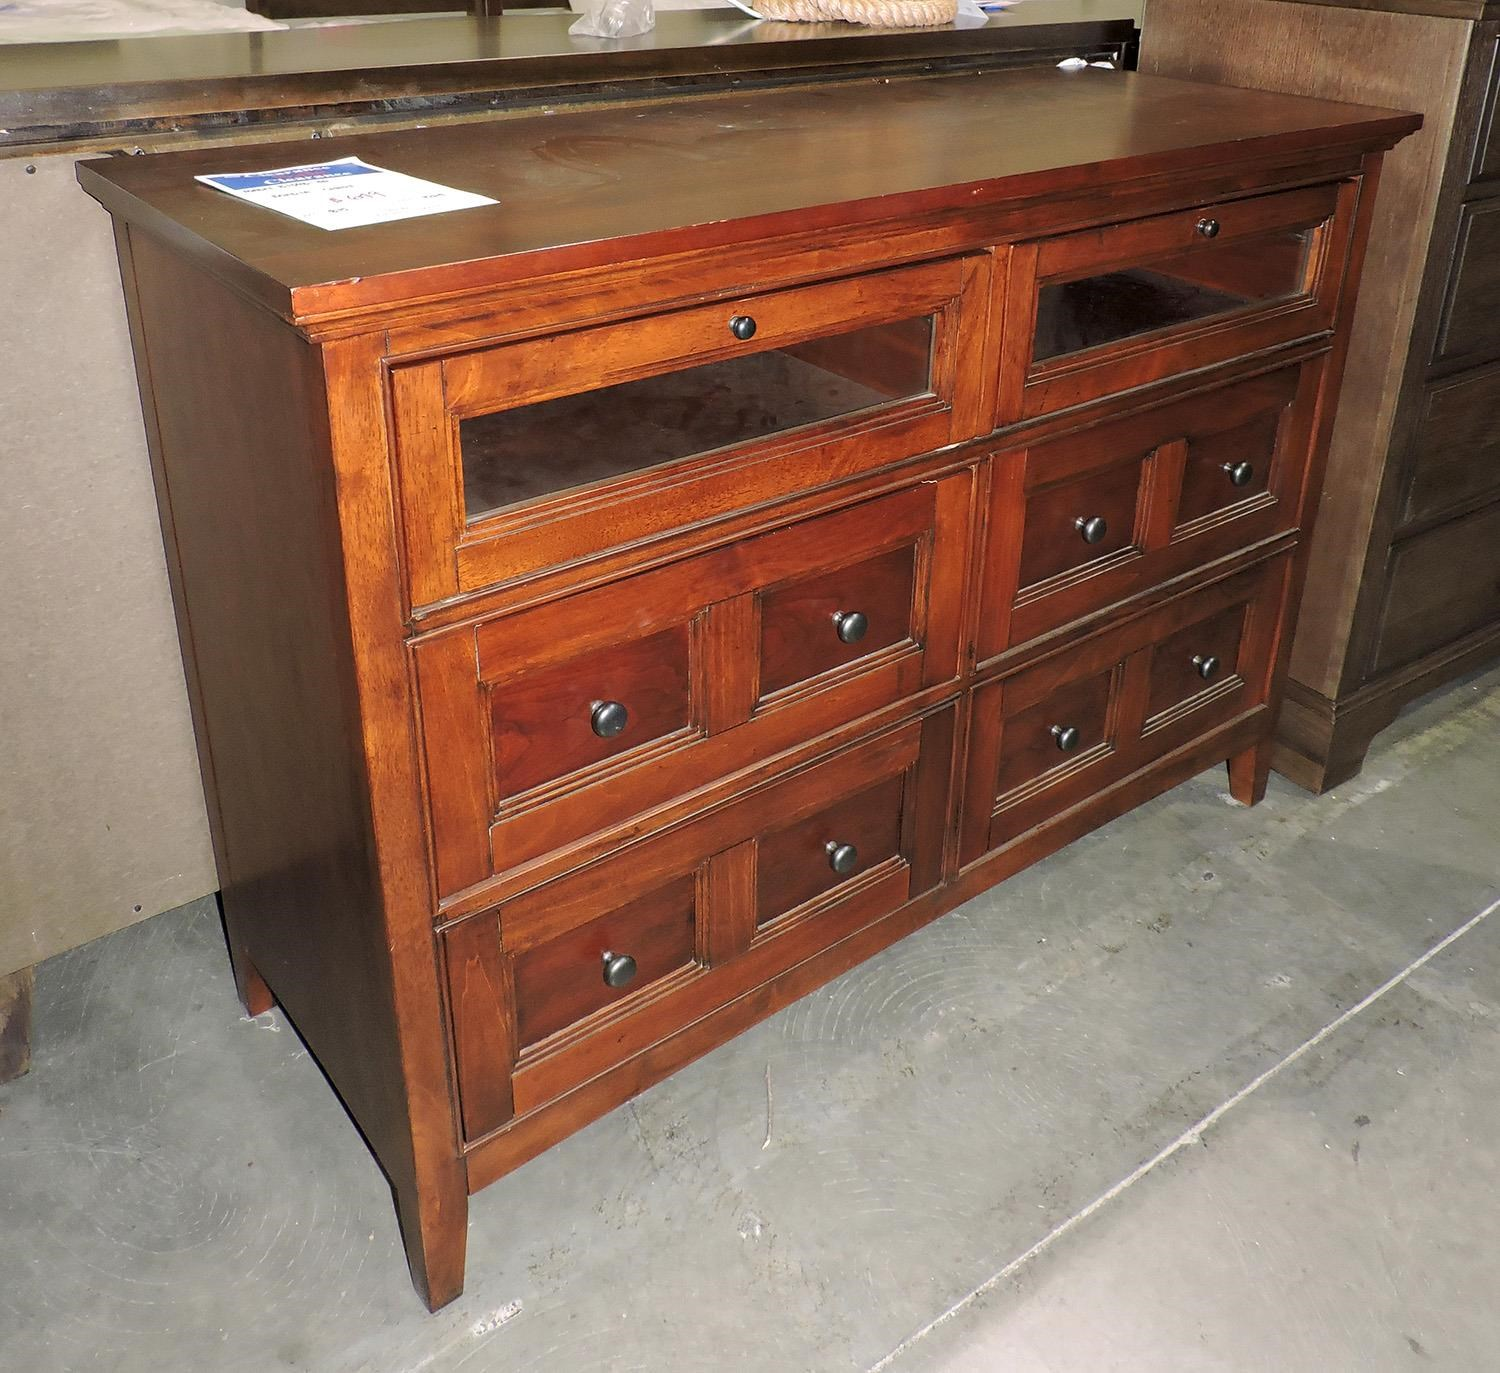 Belfort Select Clearance Media Chest - Item Number: 139863343